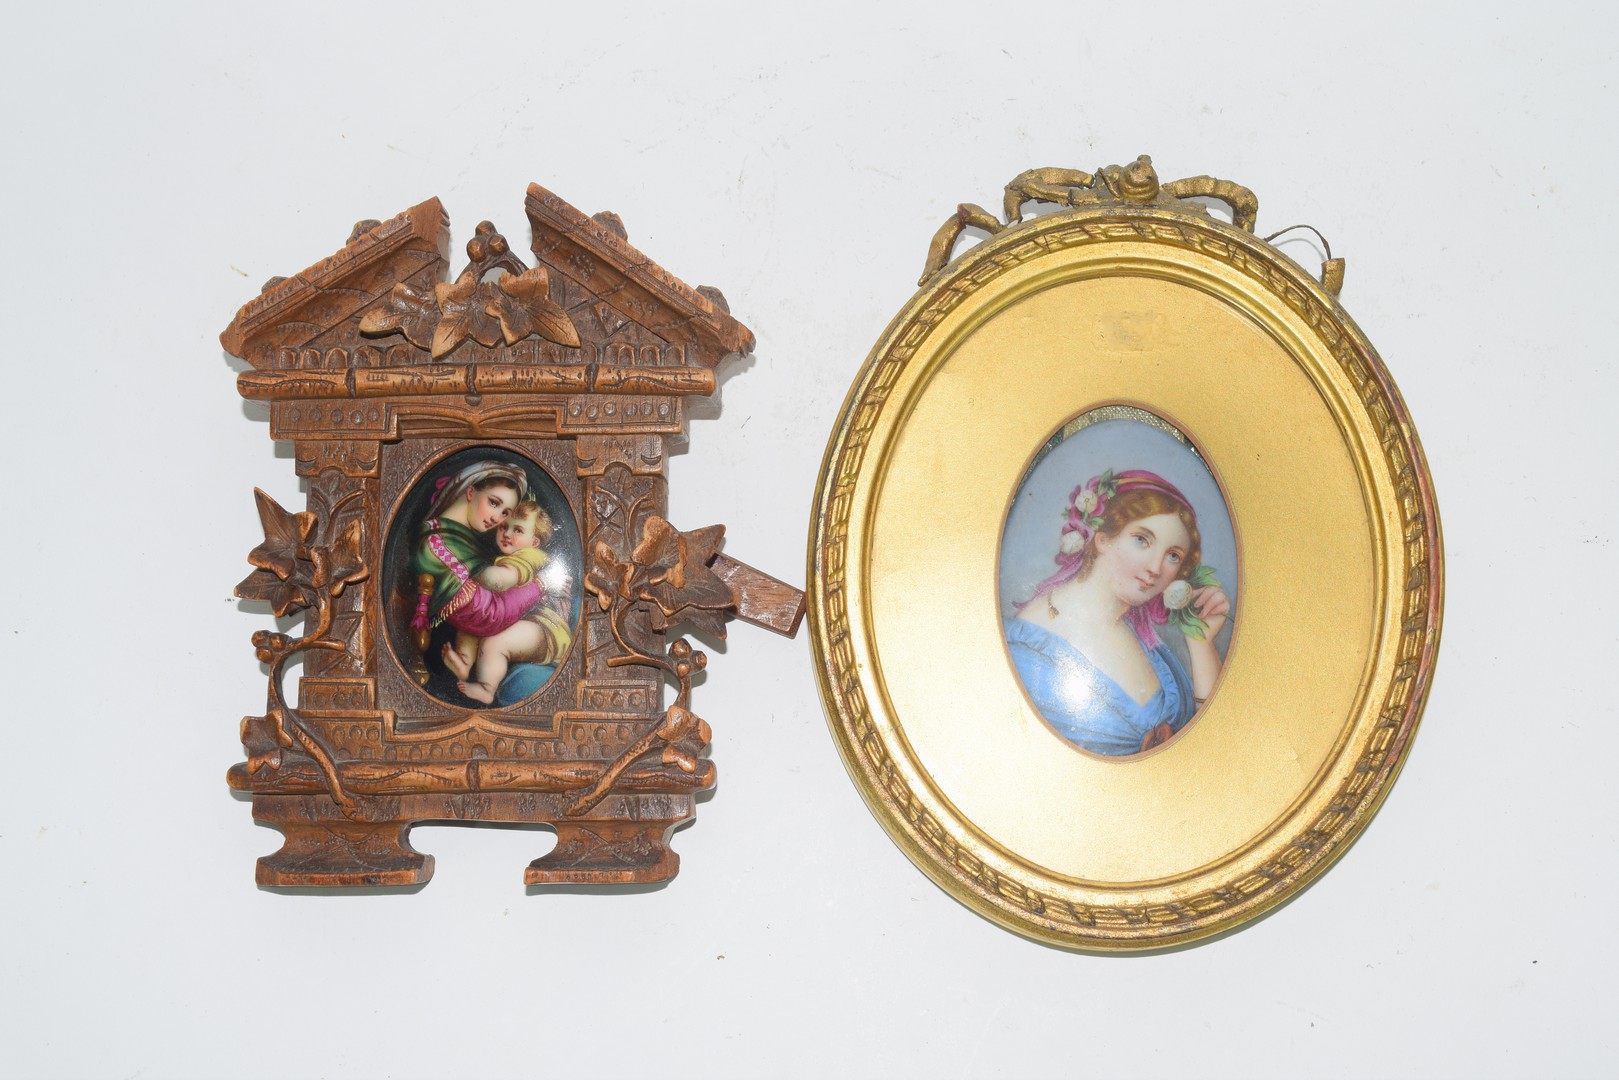 Oval picture of a maiden